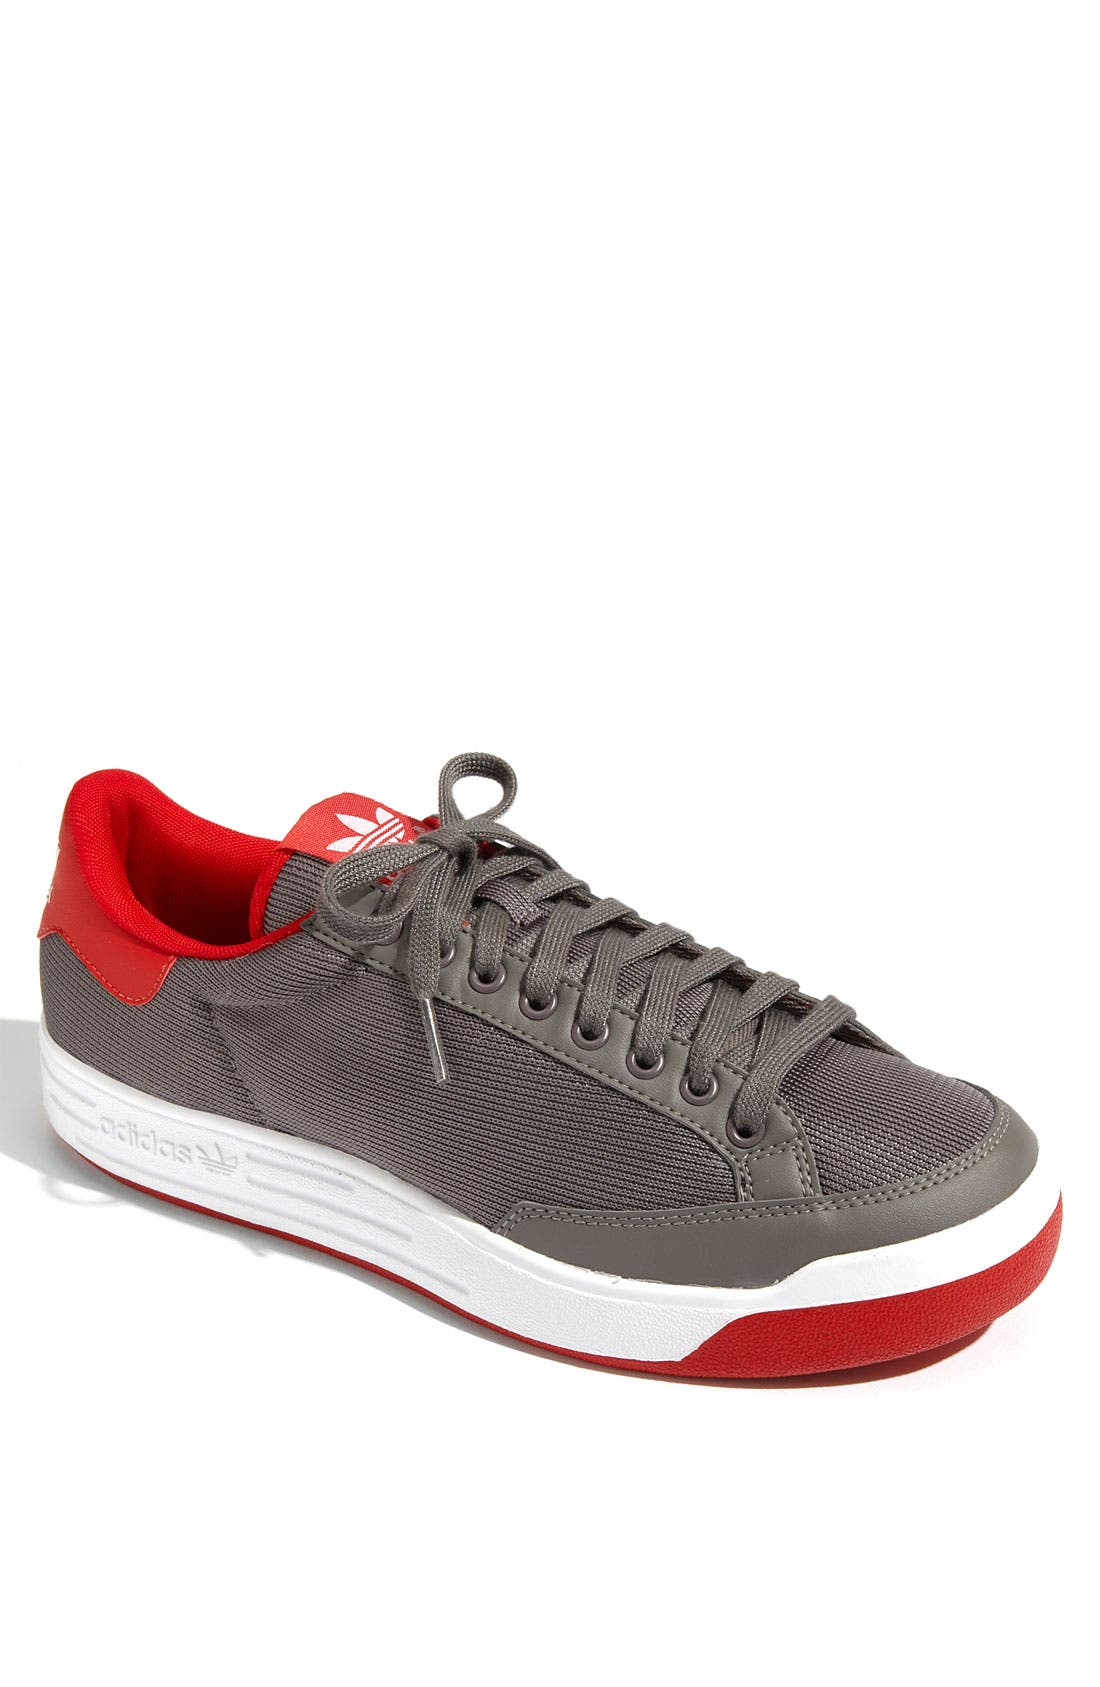 Alternate Image 1 Selected - adidas 'Rod Laver' Sneaker (Men)